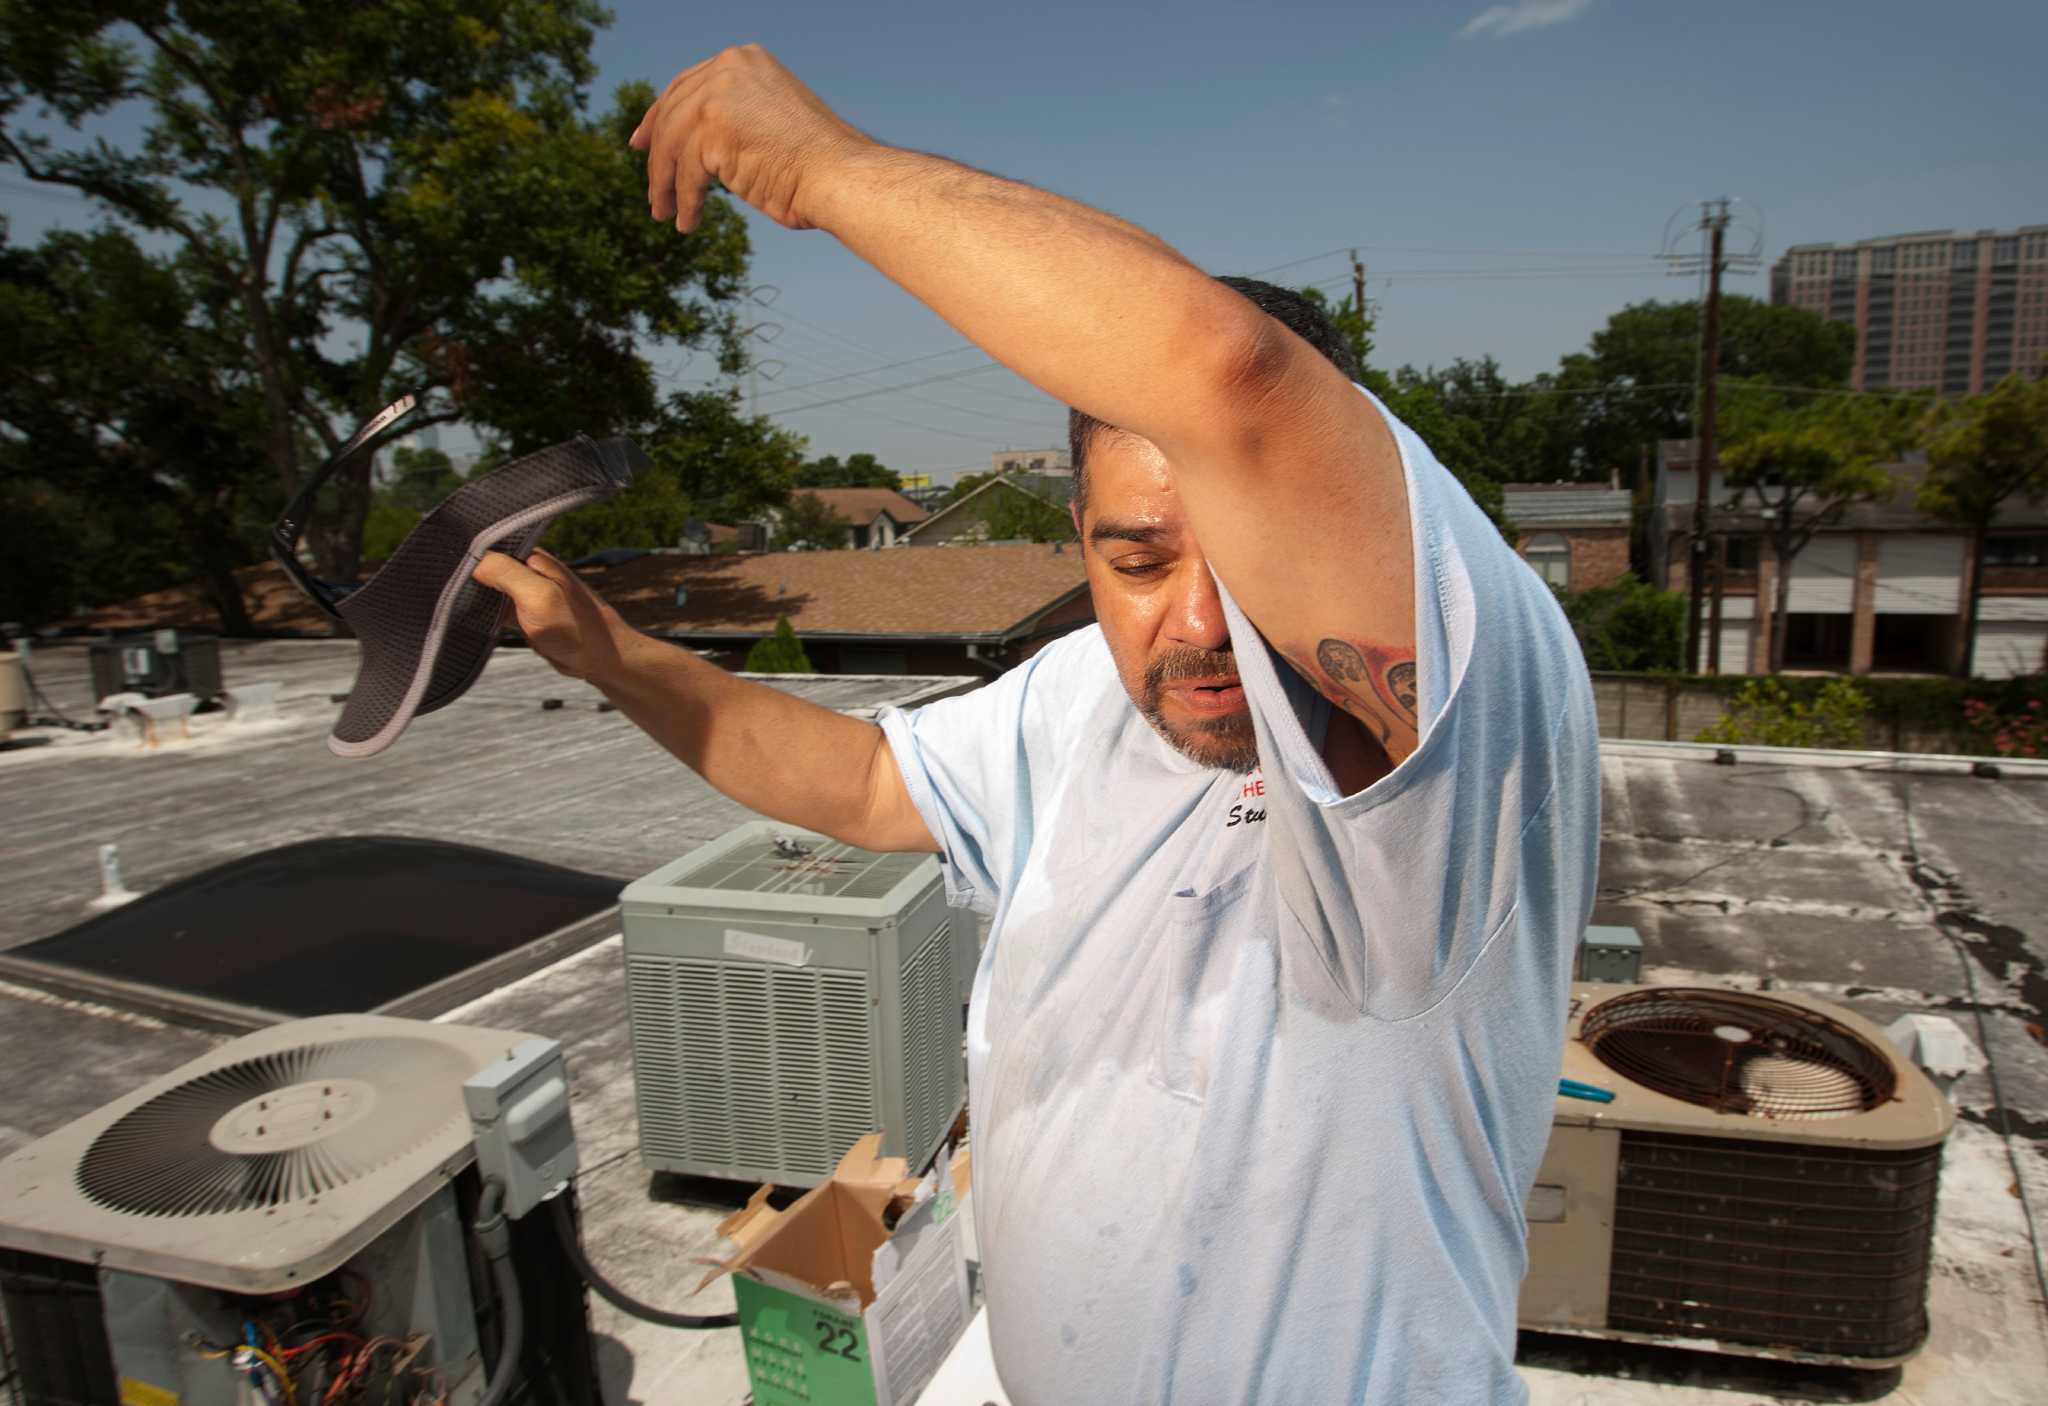 AC repairman helps people chill